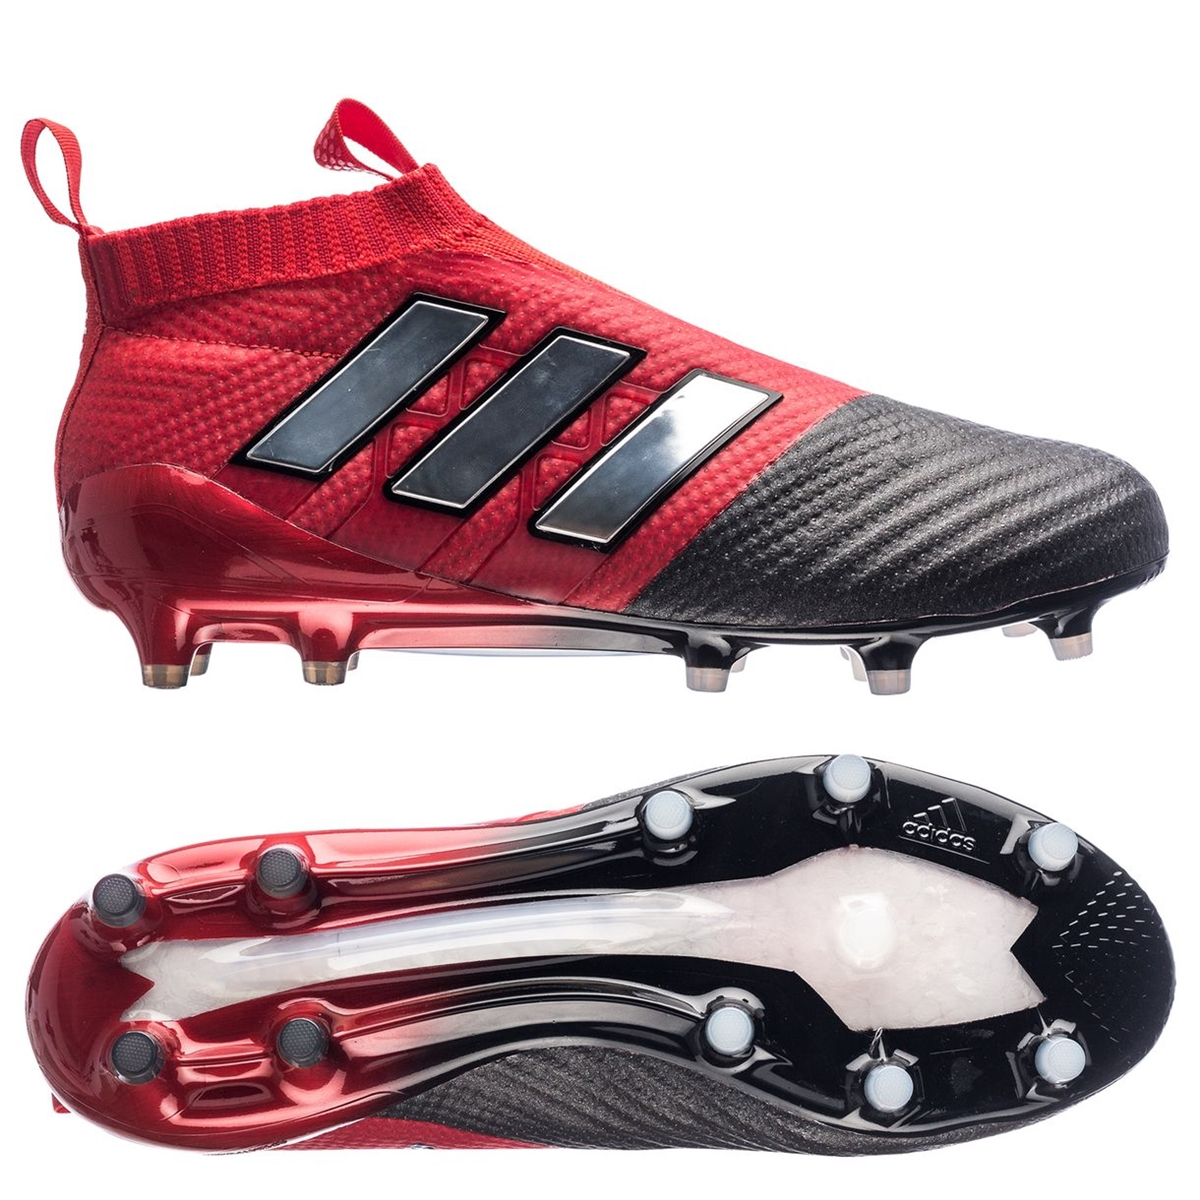 big sale c2481 32a3f Adidas ACE 17+ PURECONTROL FG Soccer Cleats (Red/White/Black)